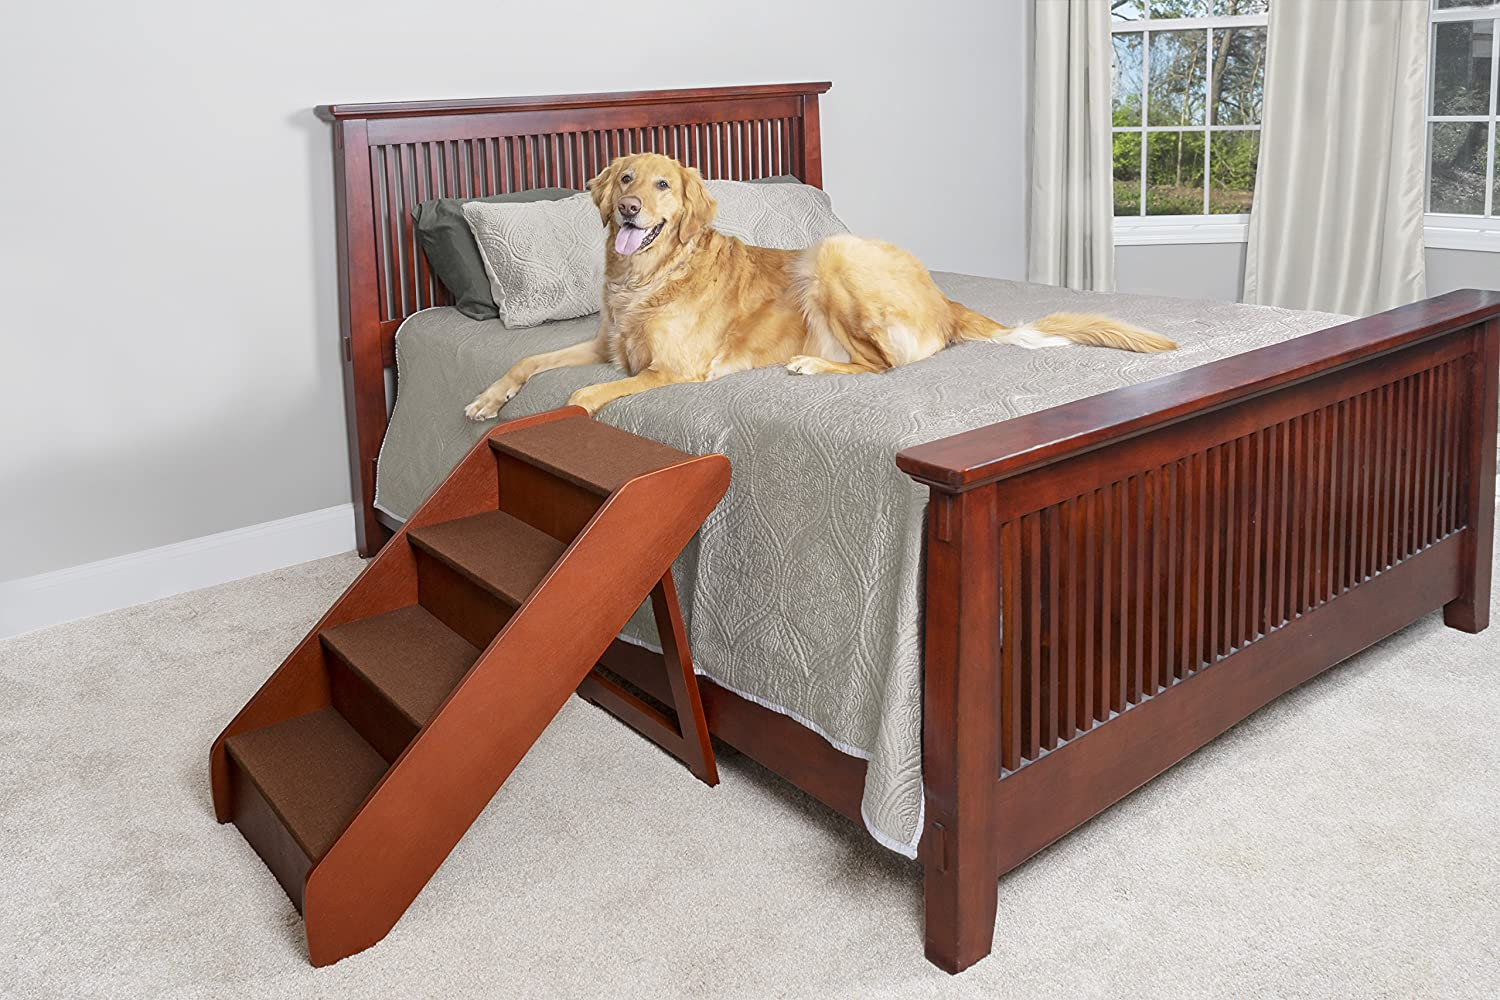 PetSafe CozyUp Folding Wood Pet Steps - PupSTEP Dog and Cat Stairs - Lightweight Durable Wooden Frame Supports up to 200 lb - Side Rails and Non-Slip Feet Provide Added Security - 25 inches : Pet Supplies